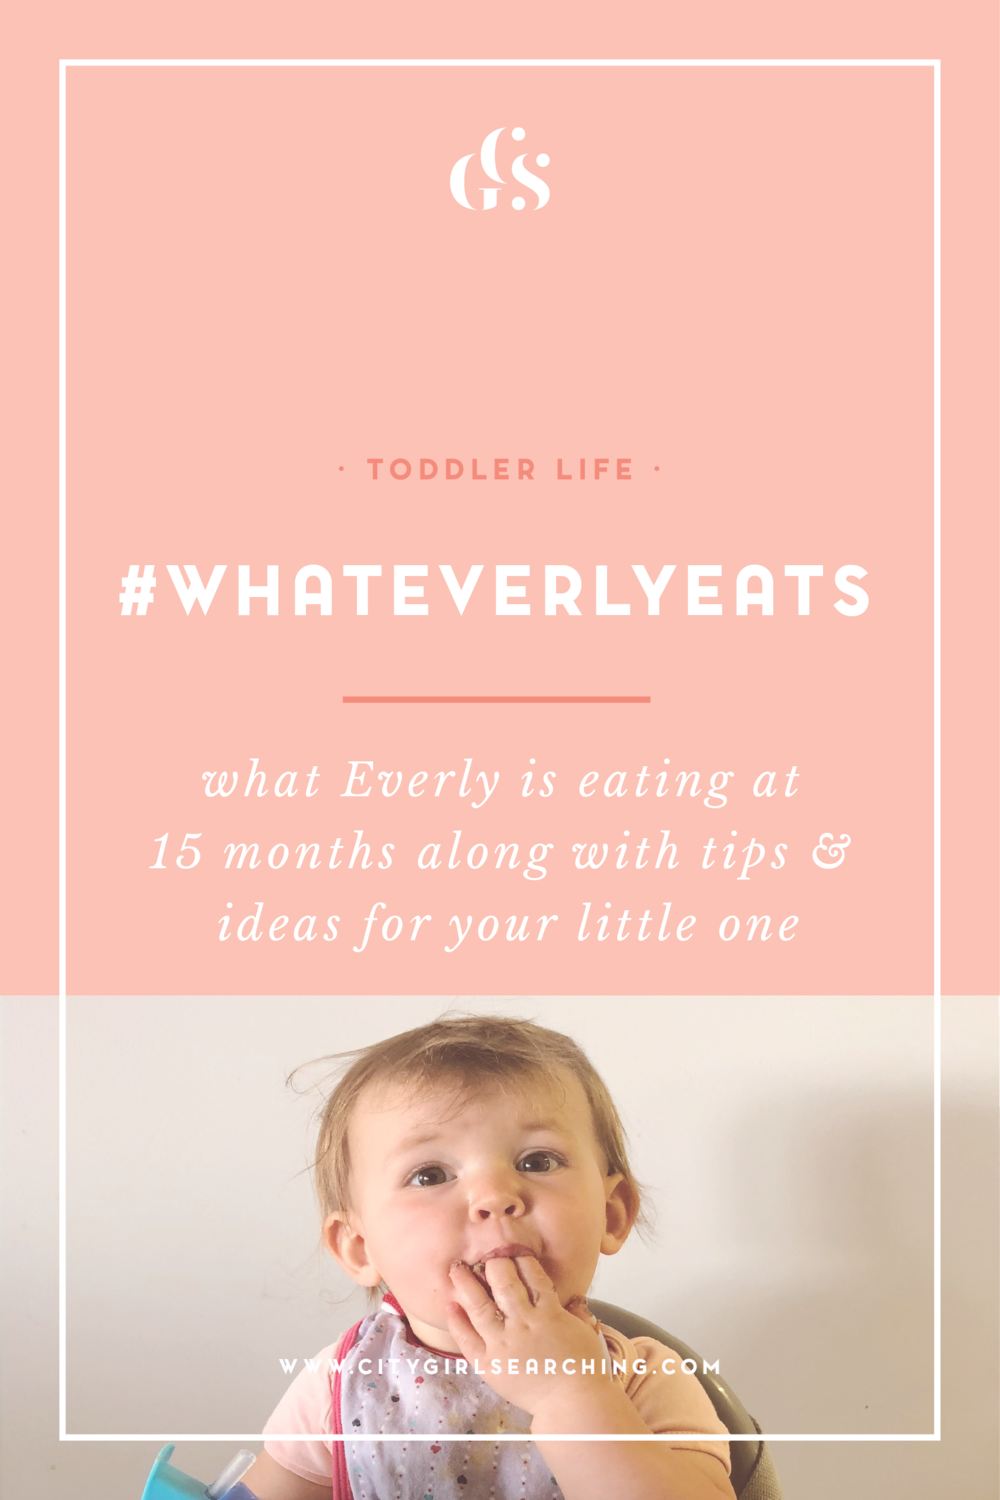 What Everly Eats at 15 months Banting Baby Low Carb High Fat for Toddler CityGirlSearching Blog-01.png